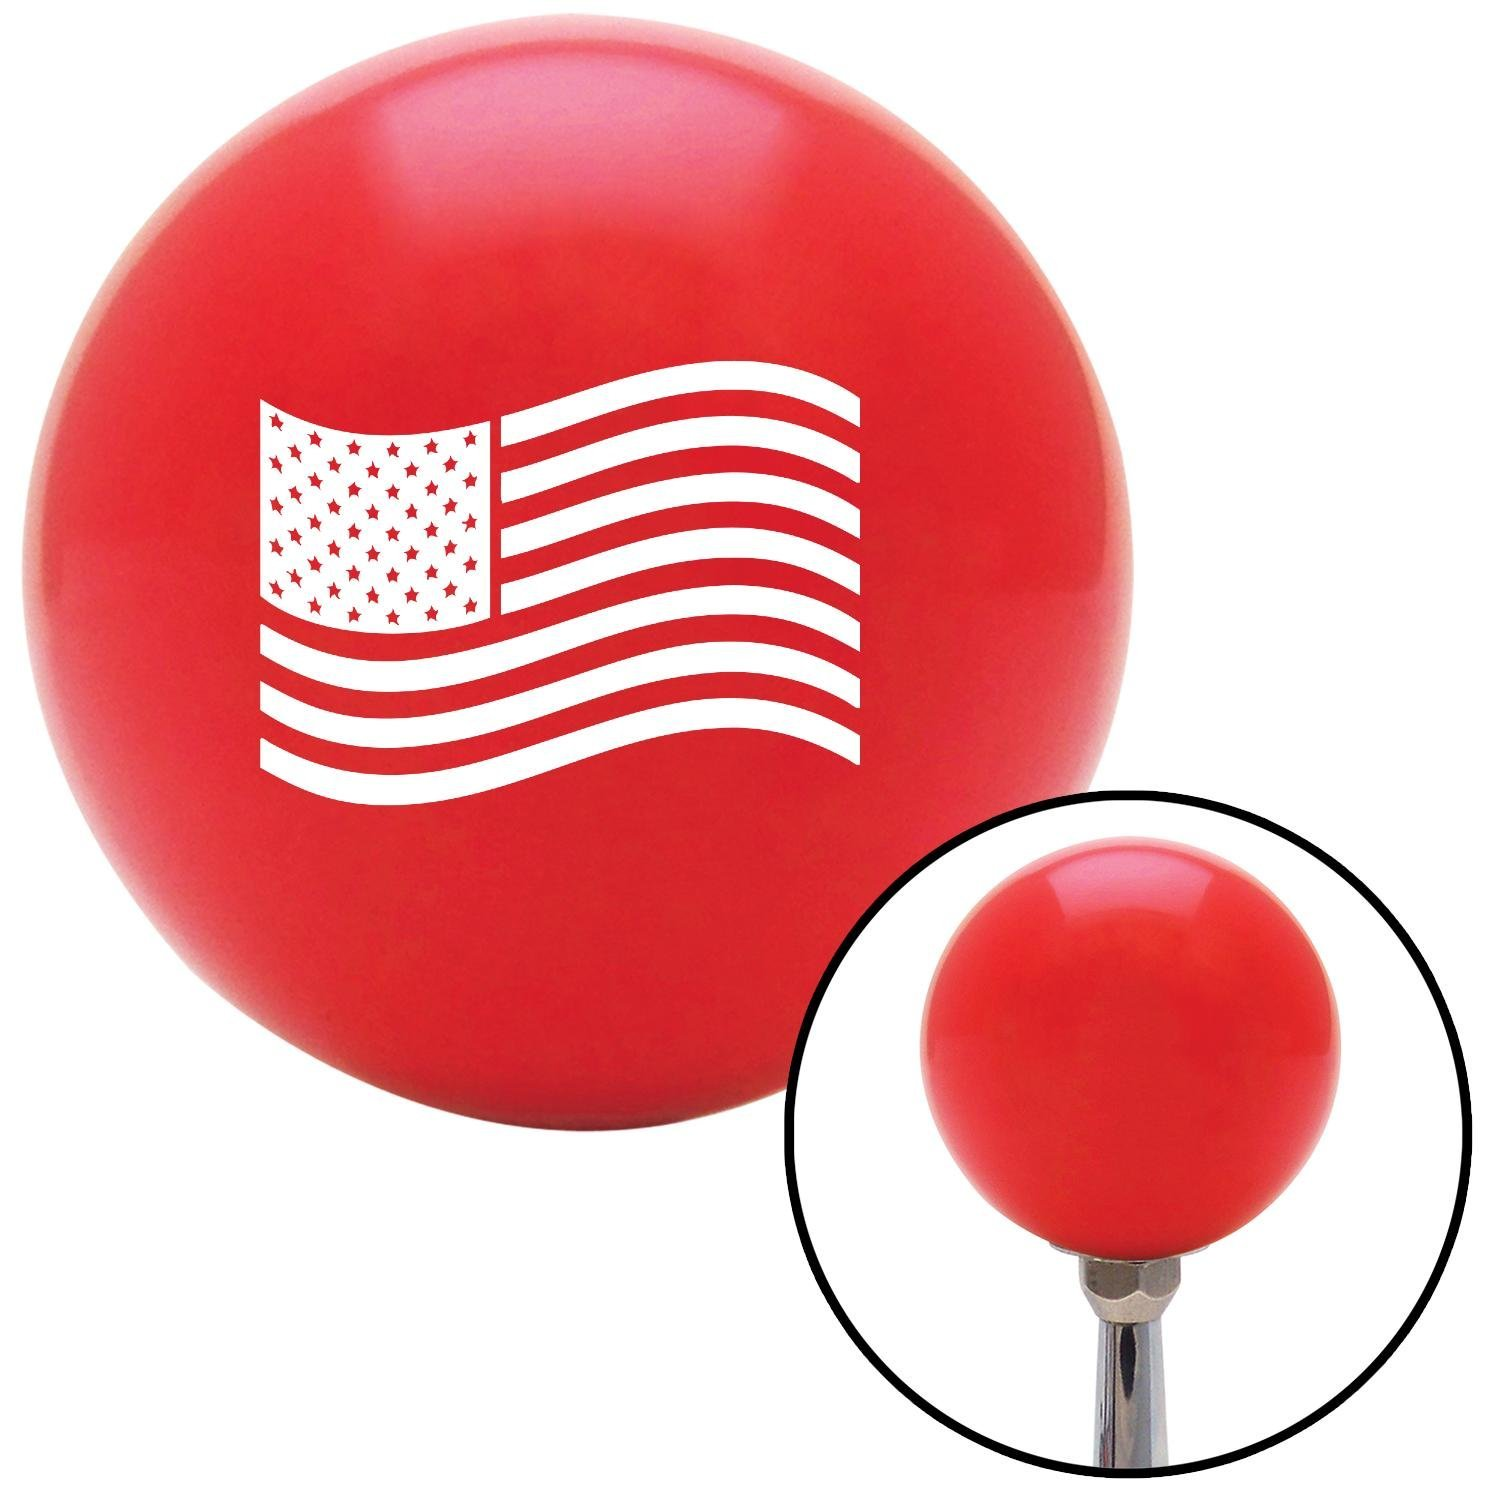 American Shifter 101980 Red Shift Knob with M16 x 1.5 Insert White US Flag